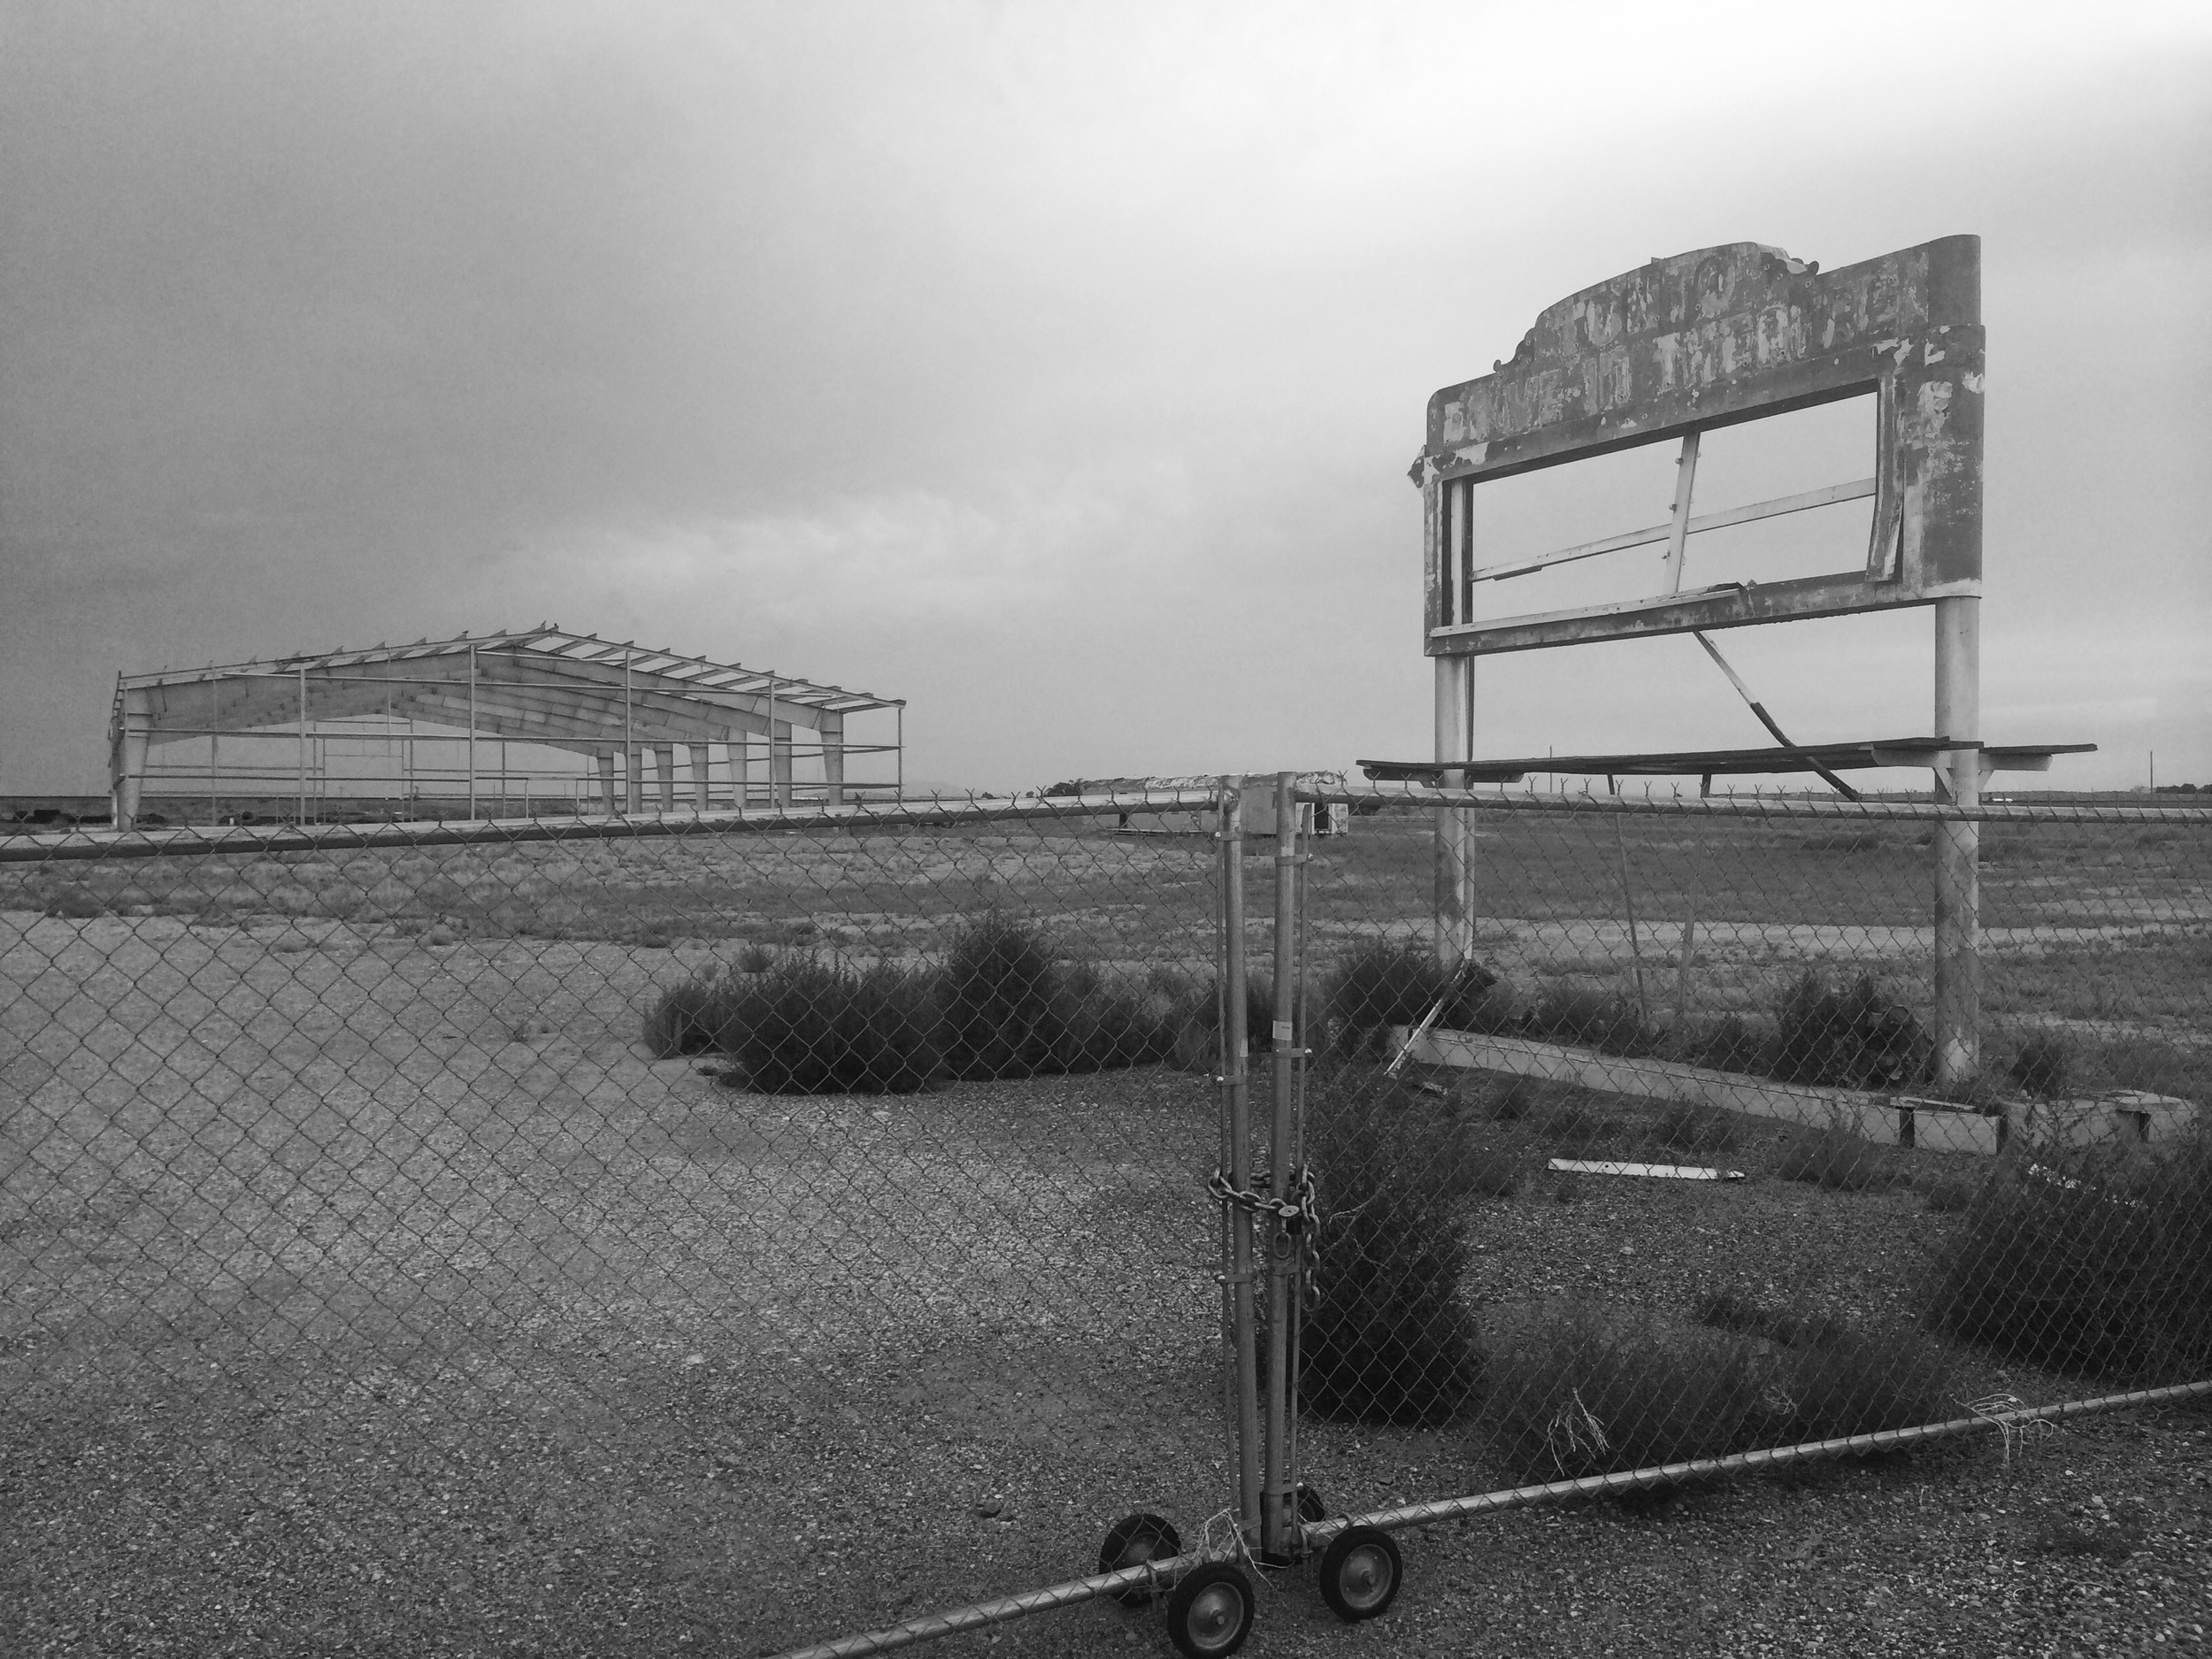 Abandoned marquee from Tonto Drive-In located in Winslow, AZ.